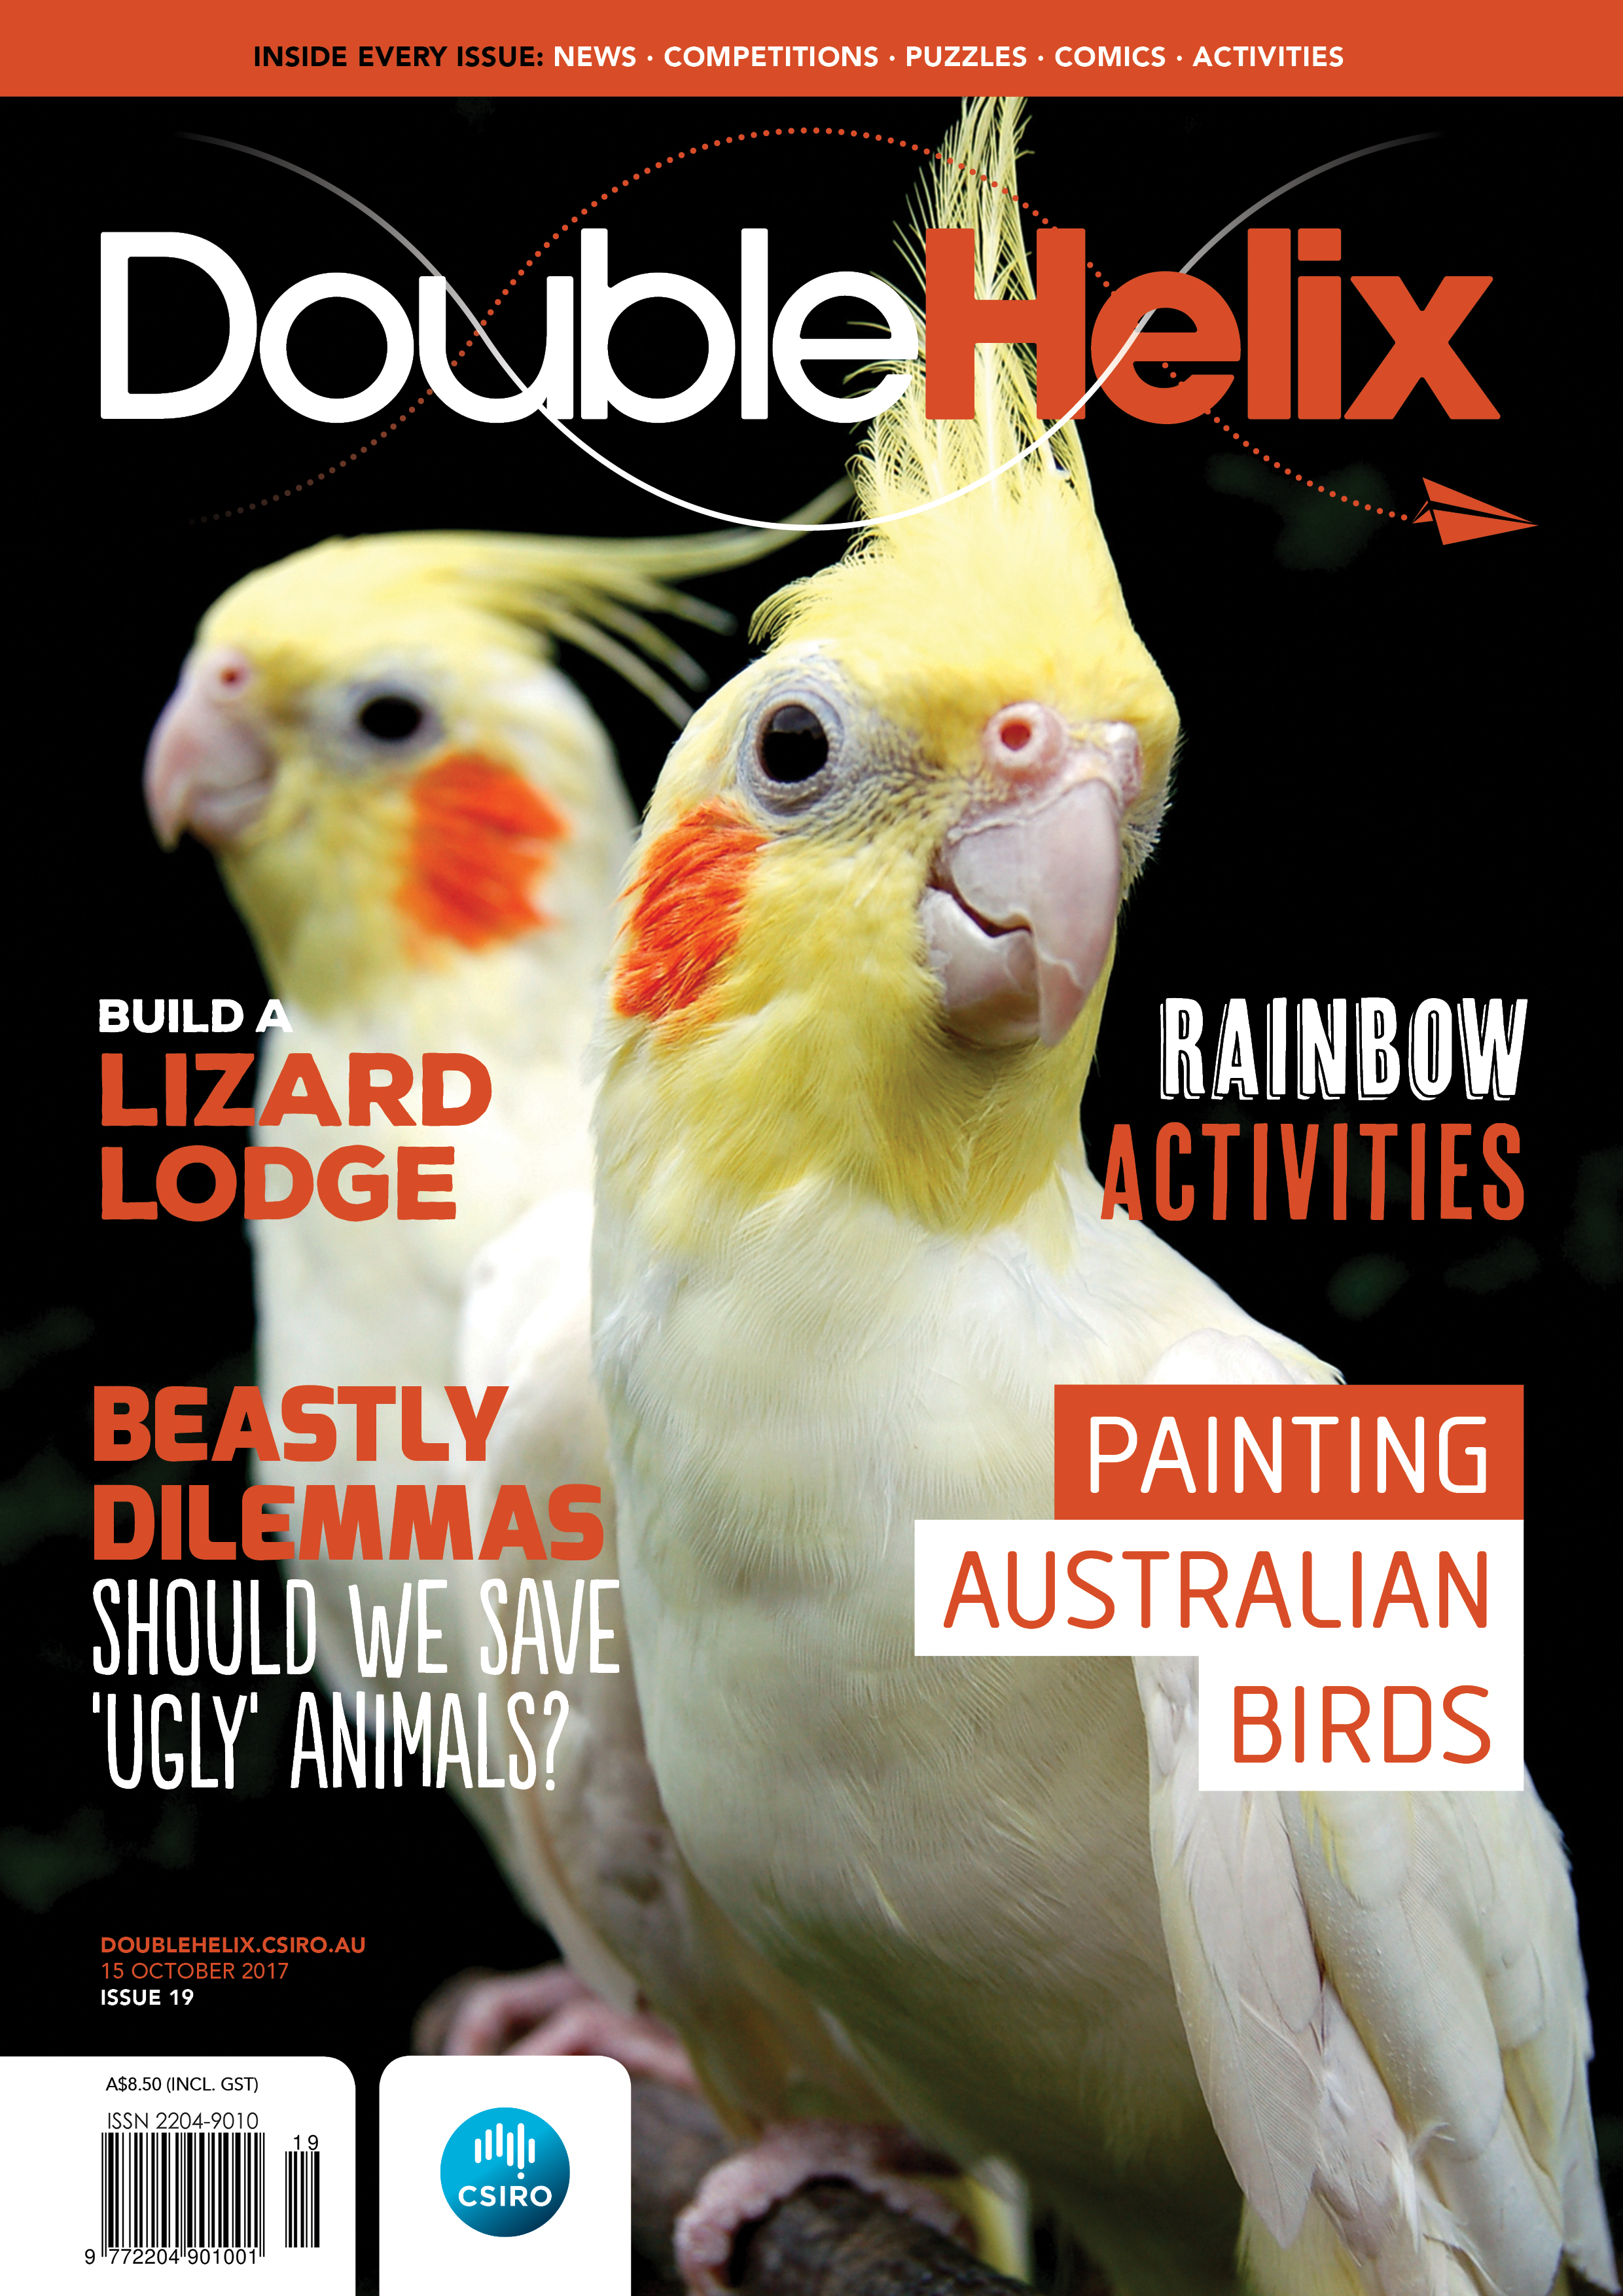 Double Helix Issue 19 cover with yellow birds